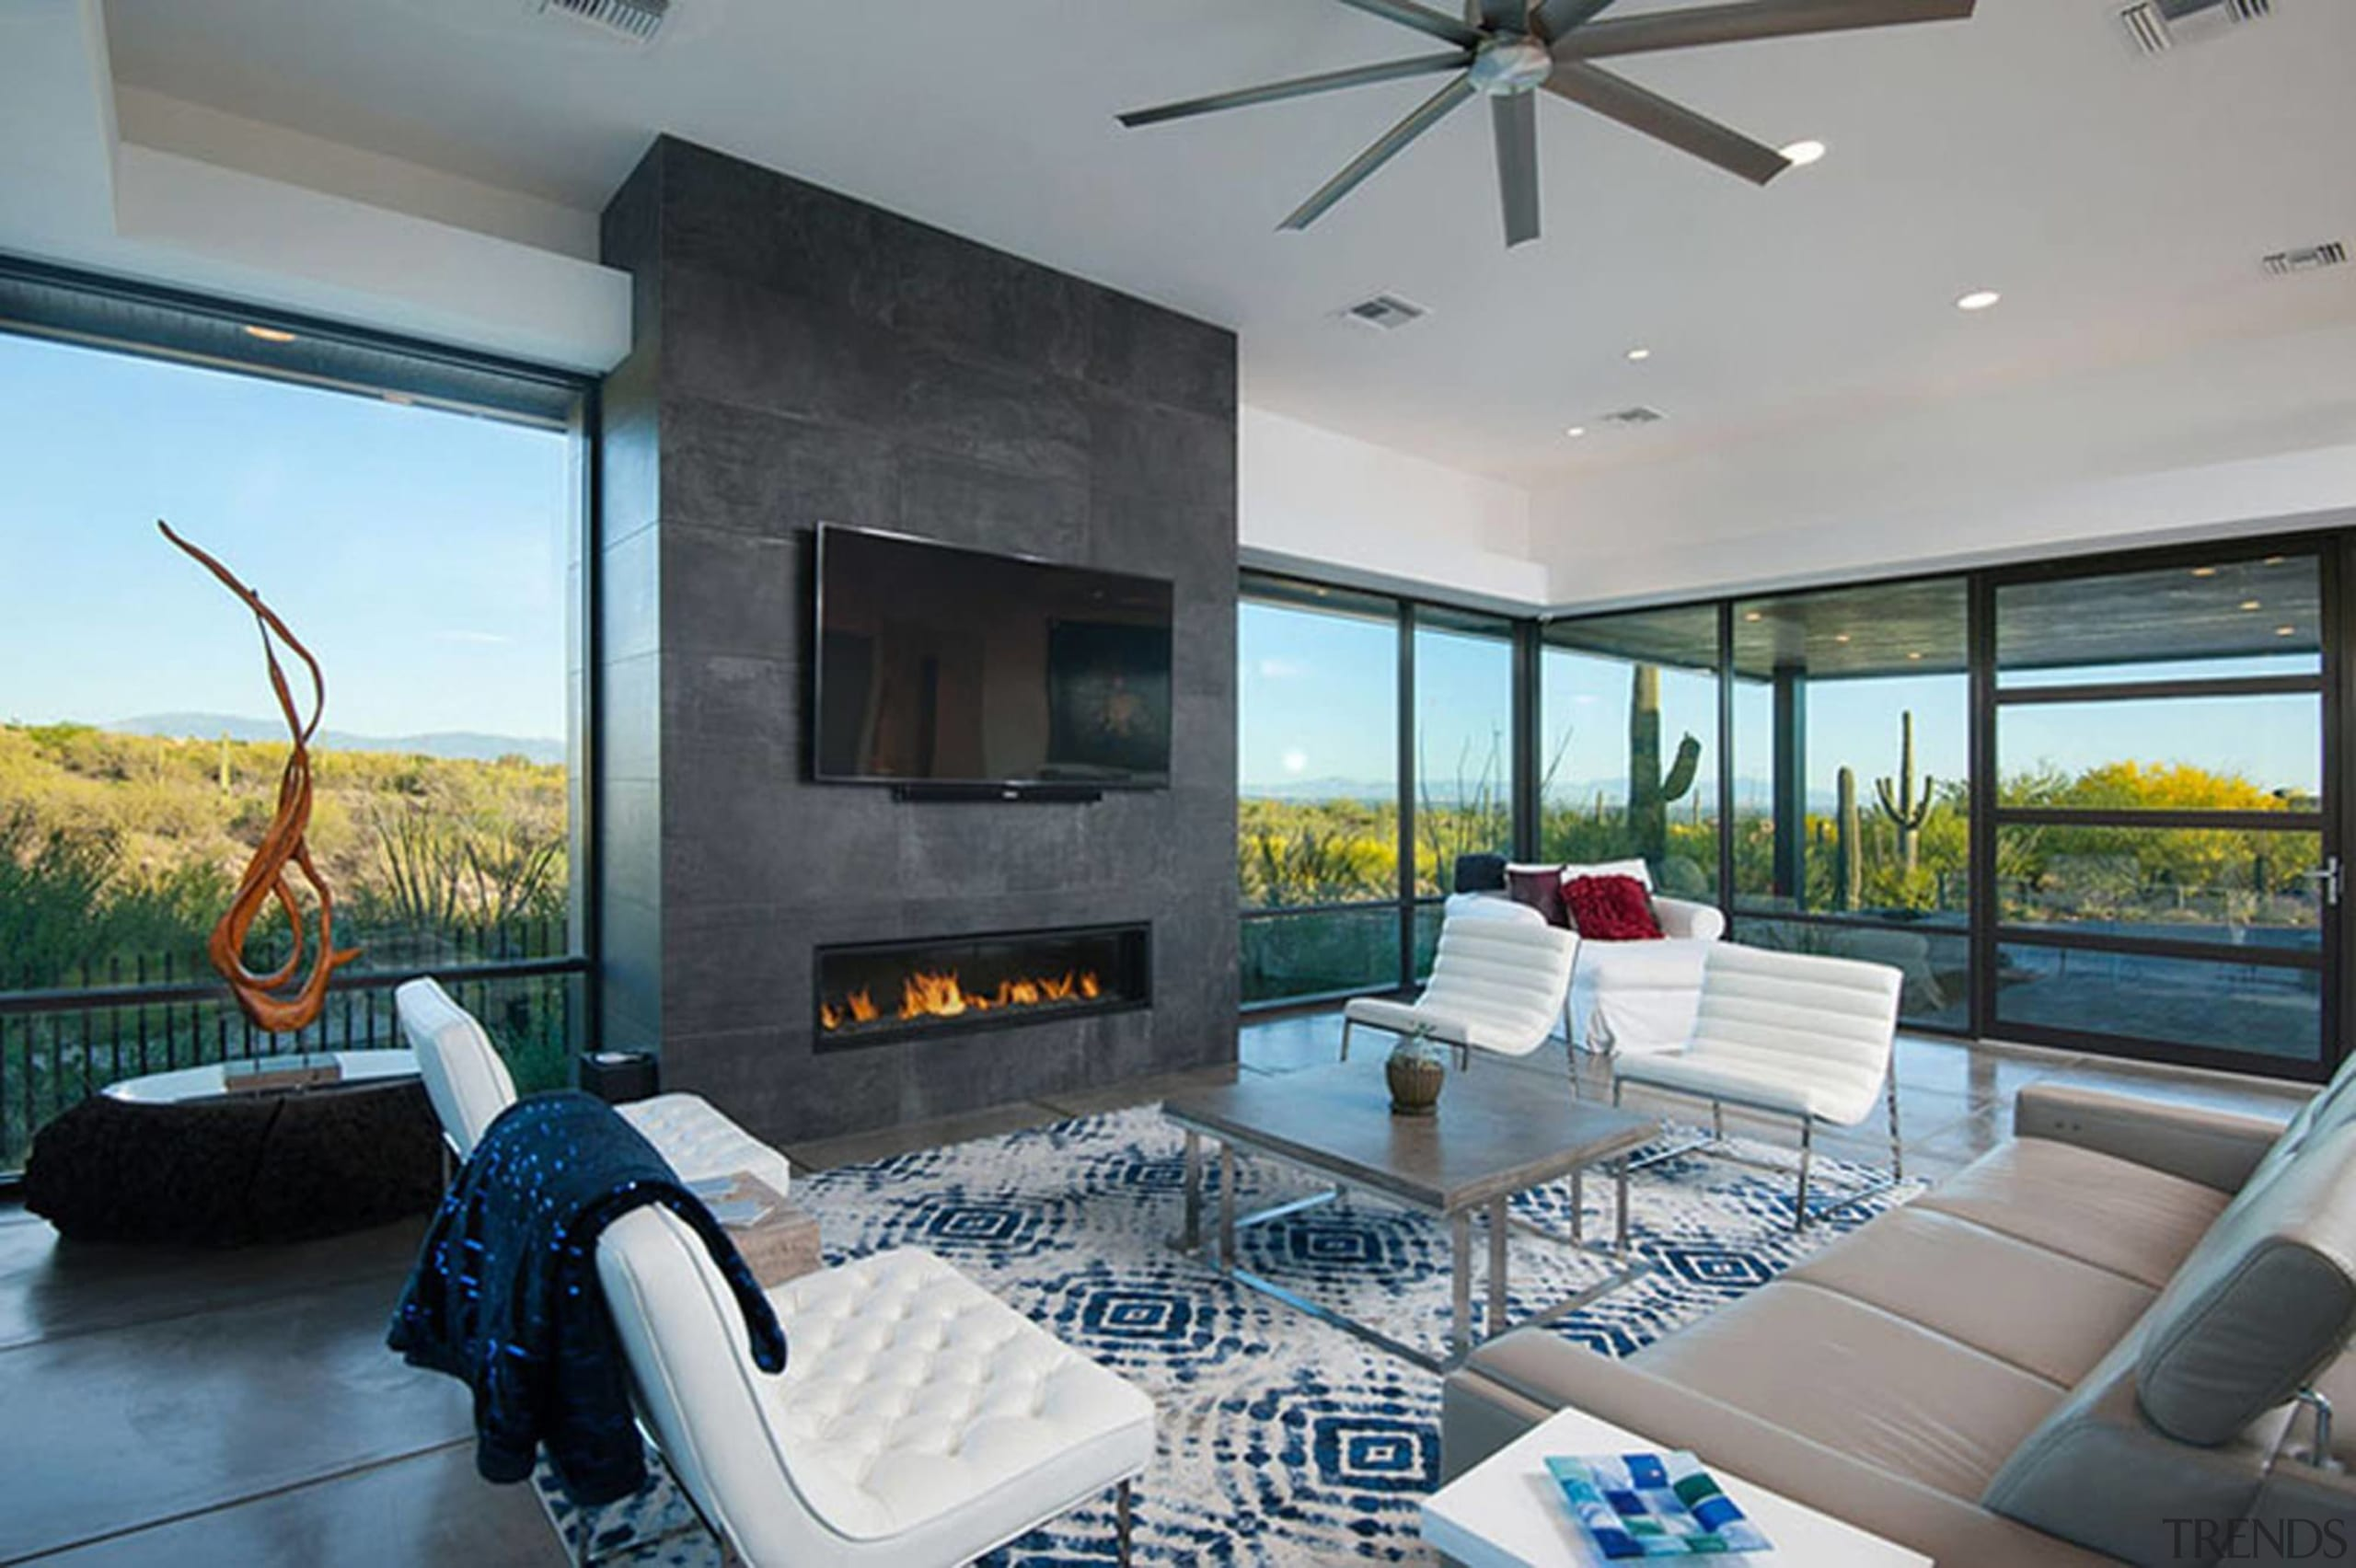 The TV sits above the fireplace facing the estate, house, interior design, living room, property, real estate, window, gray